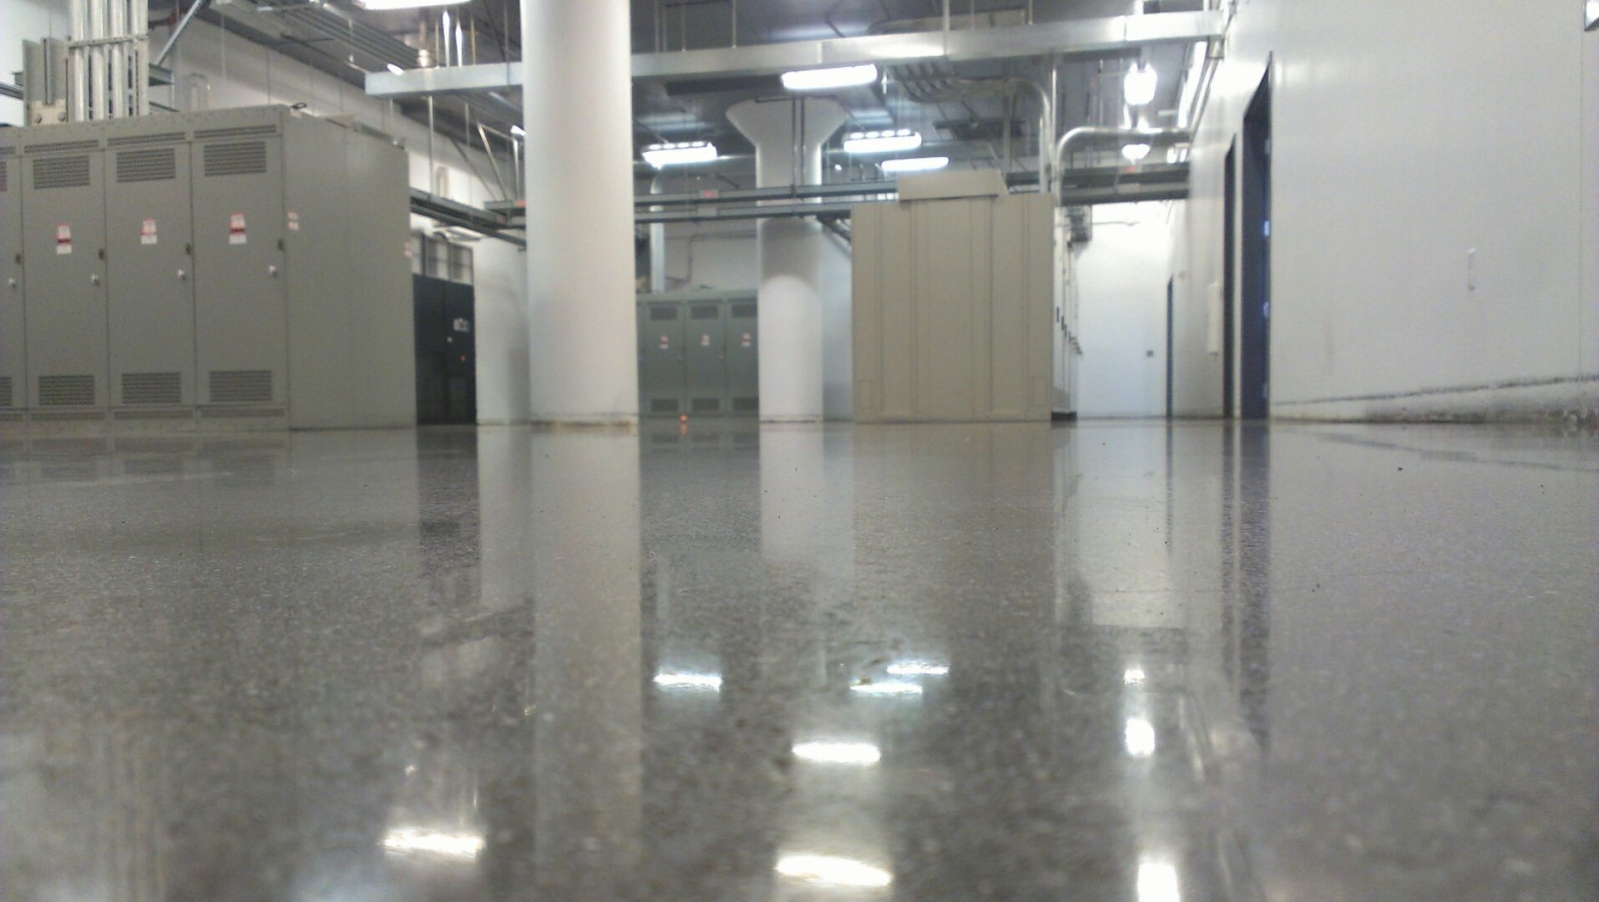 Epoxy Garage Floor Expansion Joints Garage Floor Coating Newport Beachpolished Concrete Blog